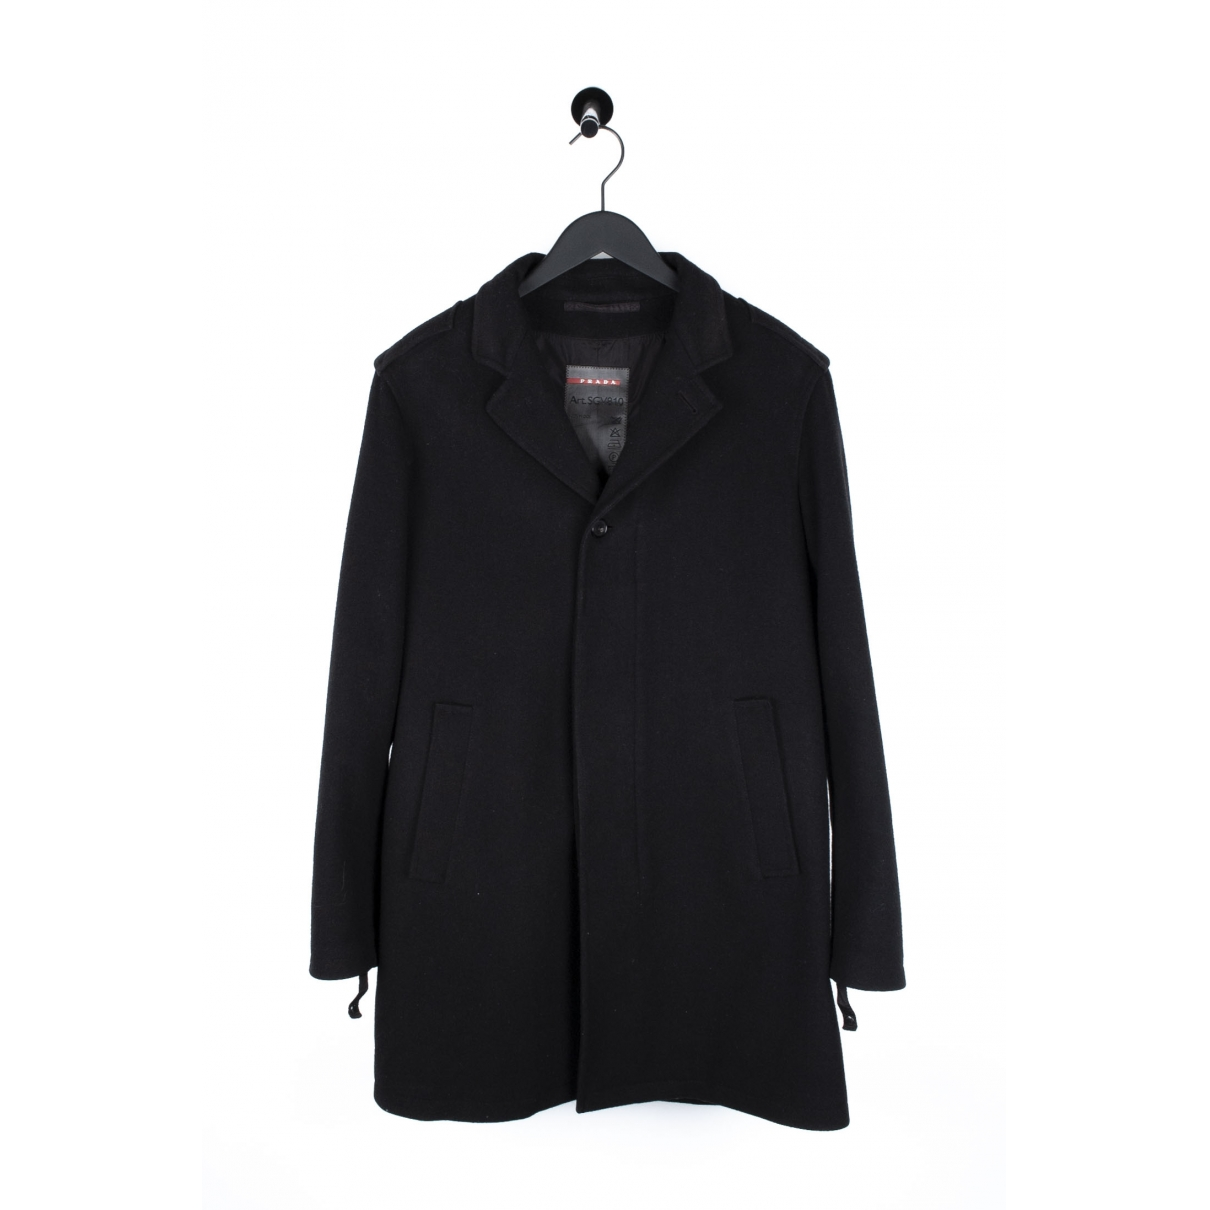 Prada \N Black Wool coat  for Men L International